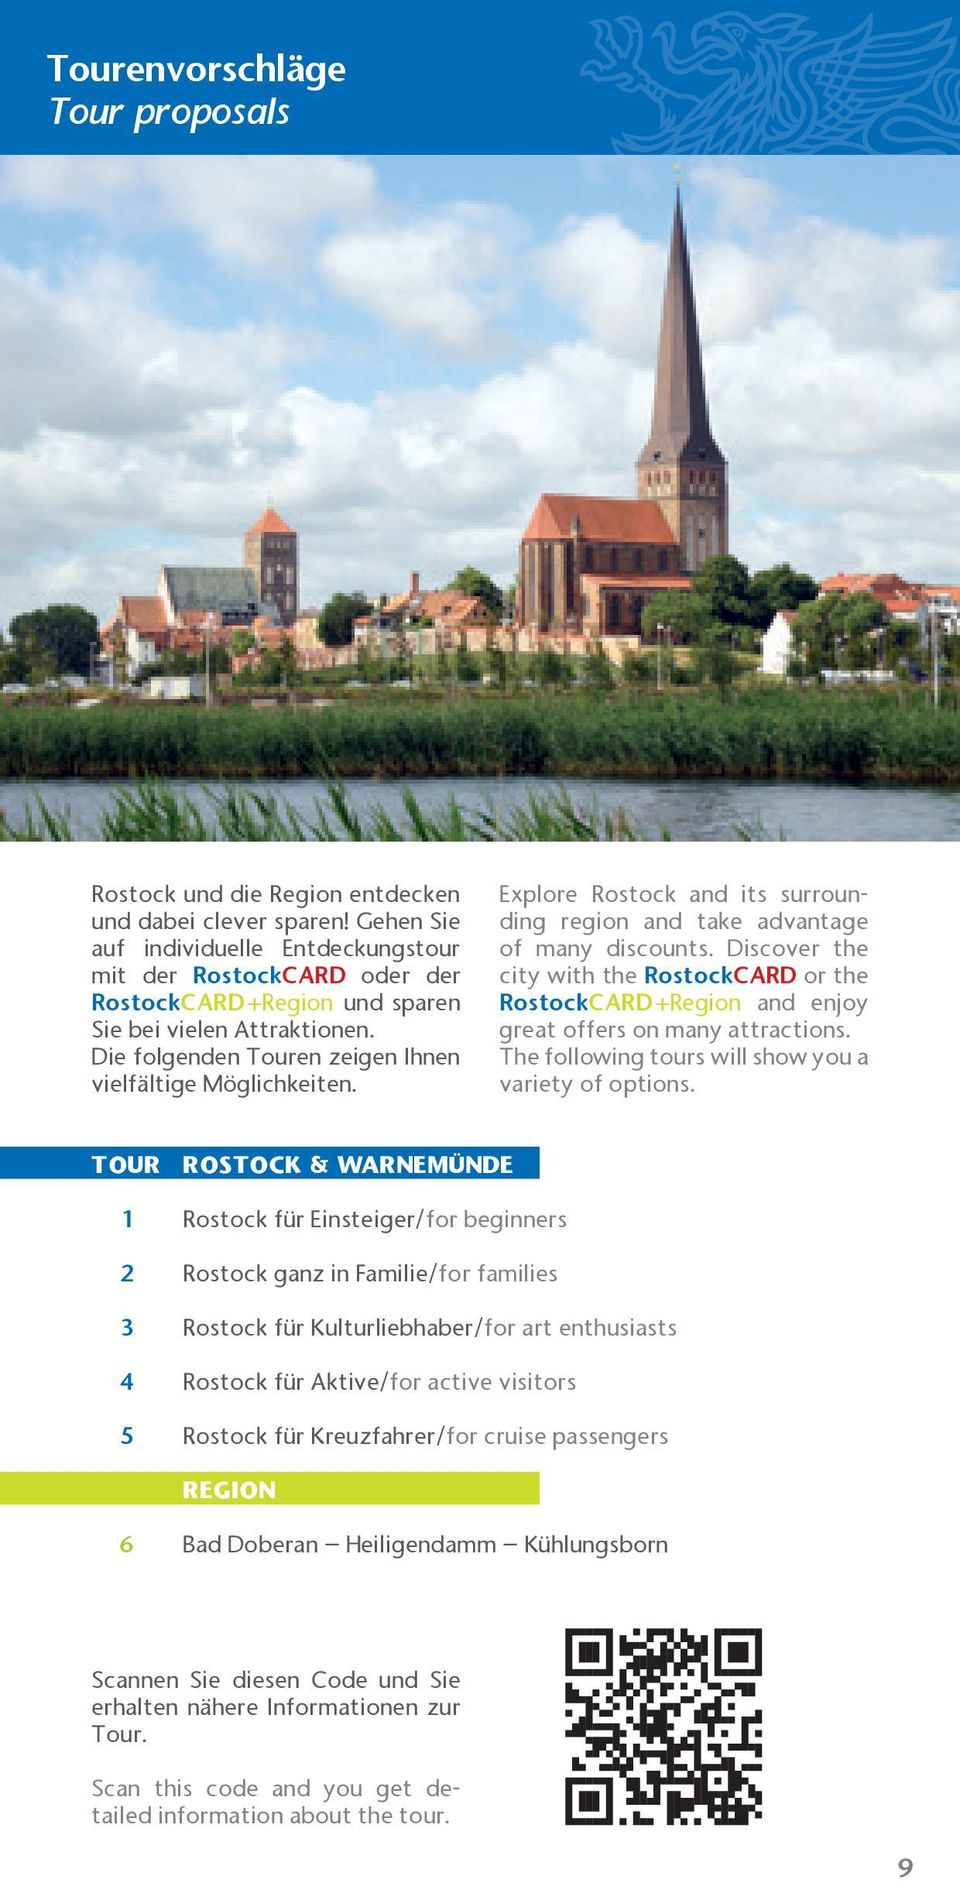 Explore Rostock and its surrounding region and take advantage of many s. Discover the city with the RostockCARD or the RostockCARD +Region and enjoy great offers on many attractions.